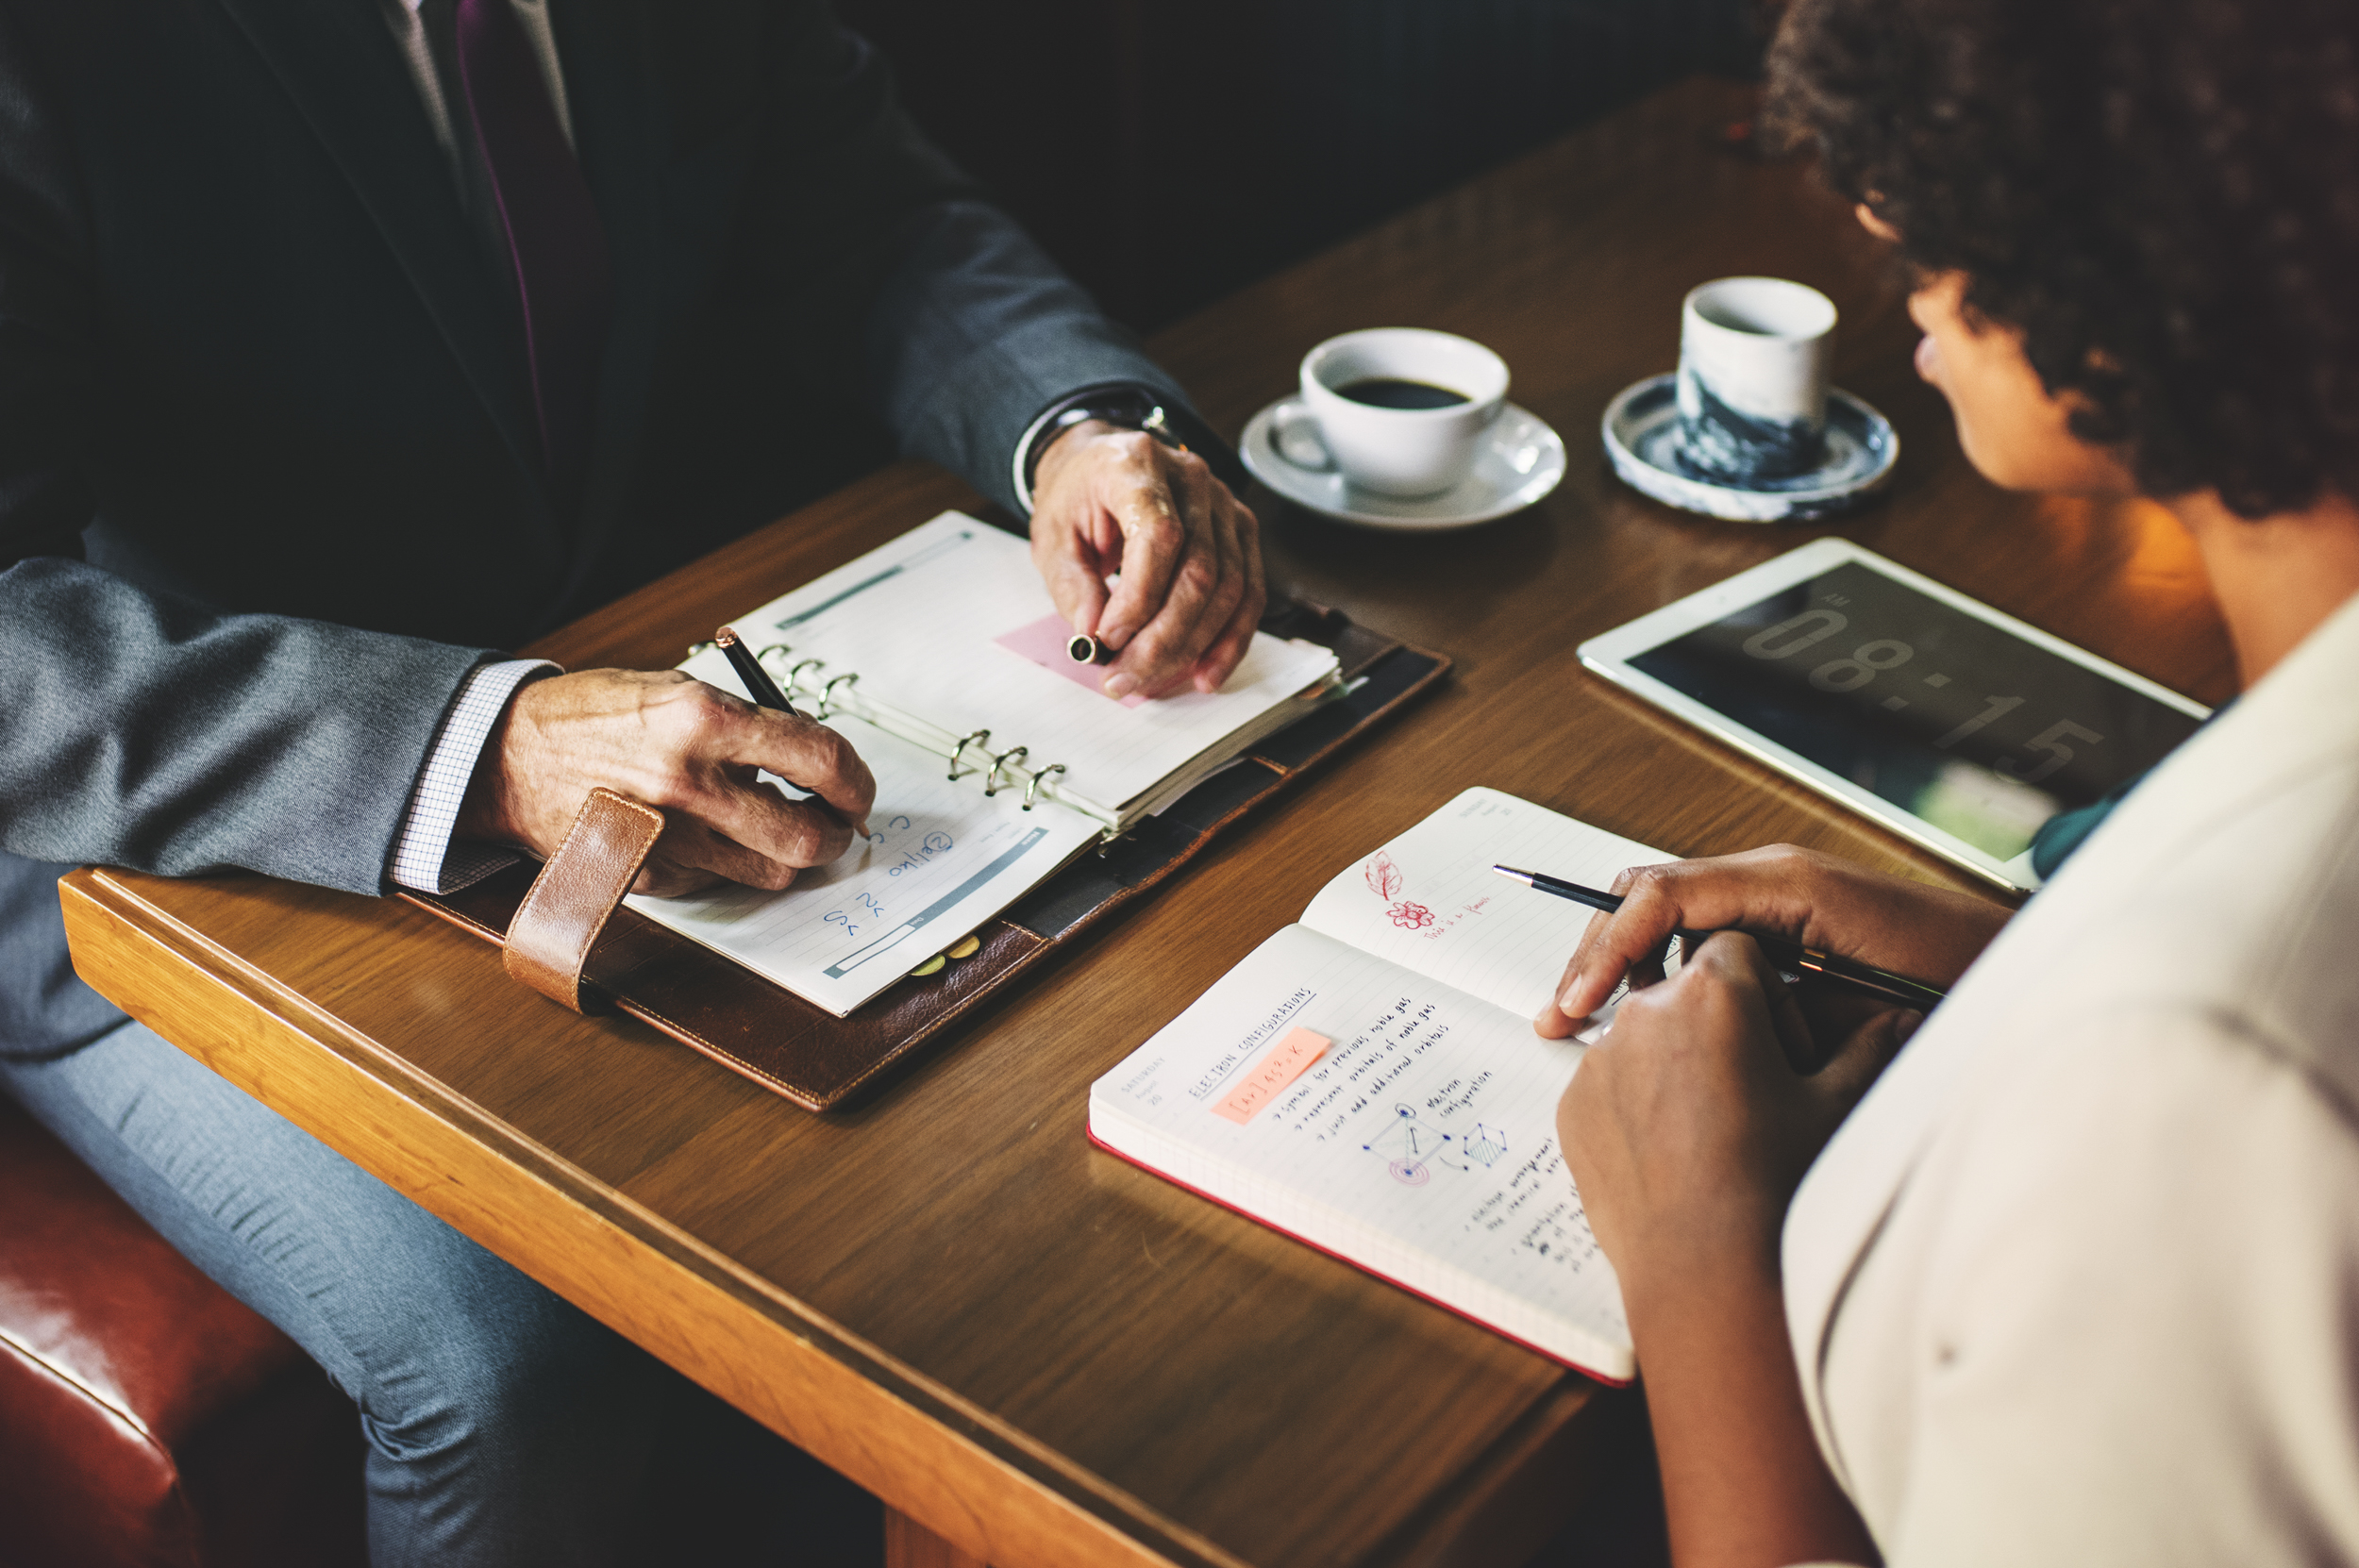 Executive coaching - We offer one-on-one development and executive coaching to support leaders to enhance their impact.Find out more